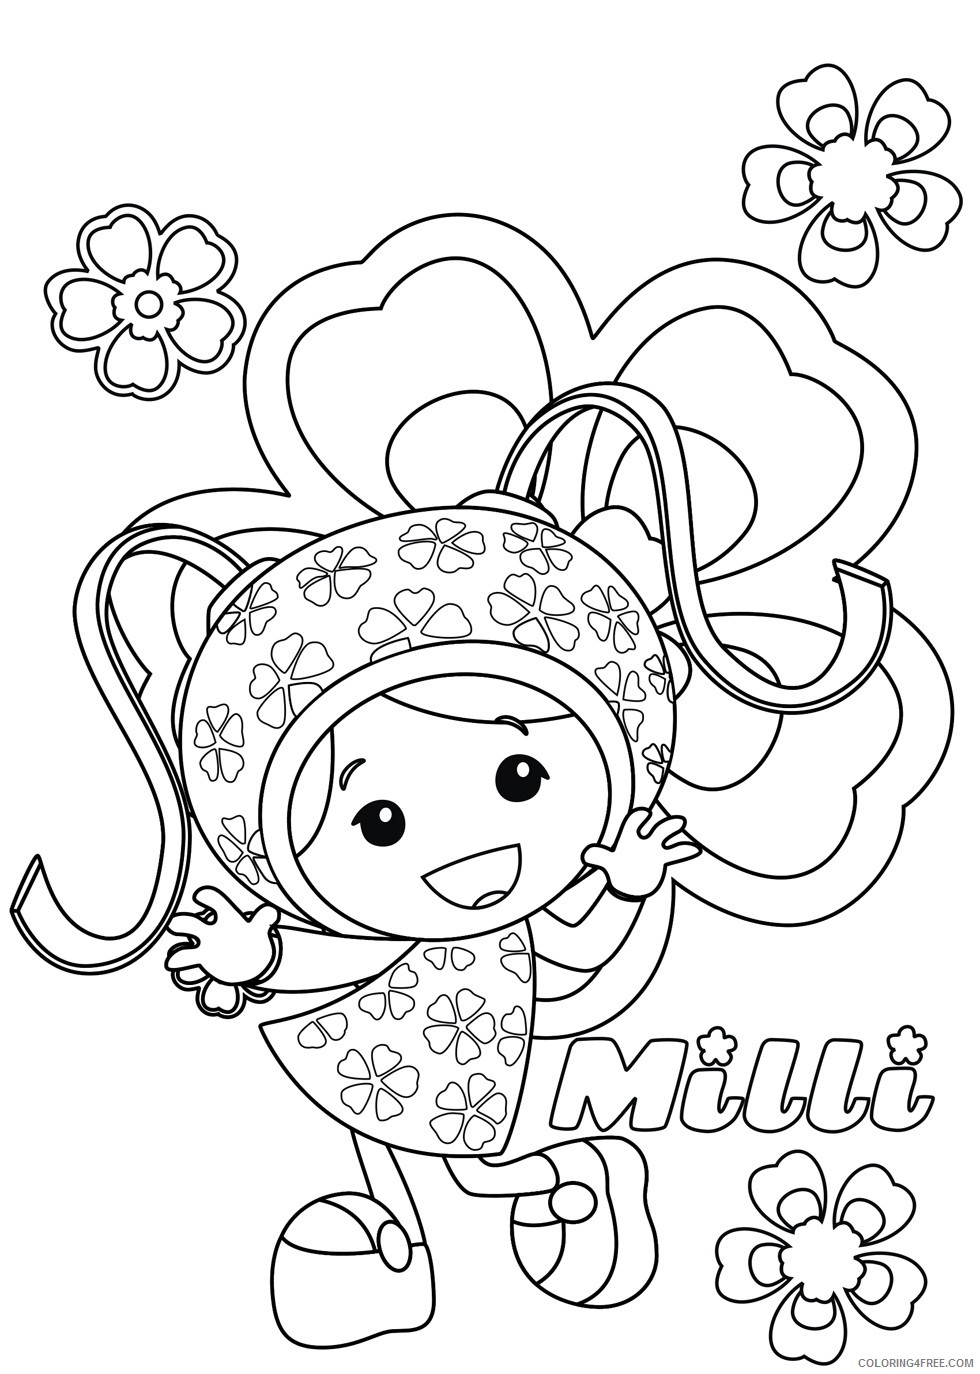 team umizoomi milli coloring pages Coloring4free